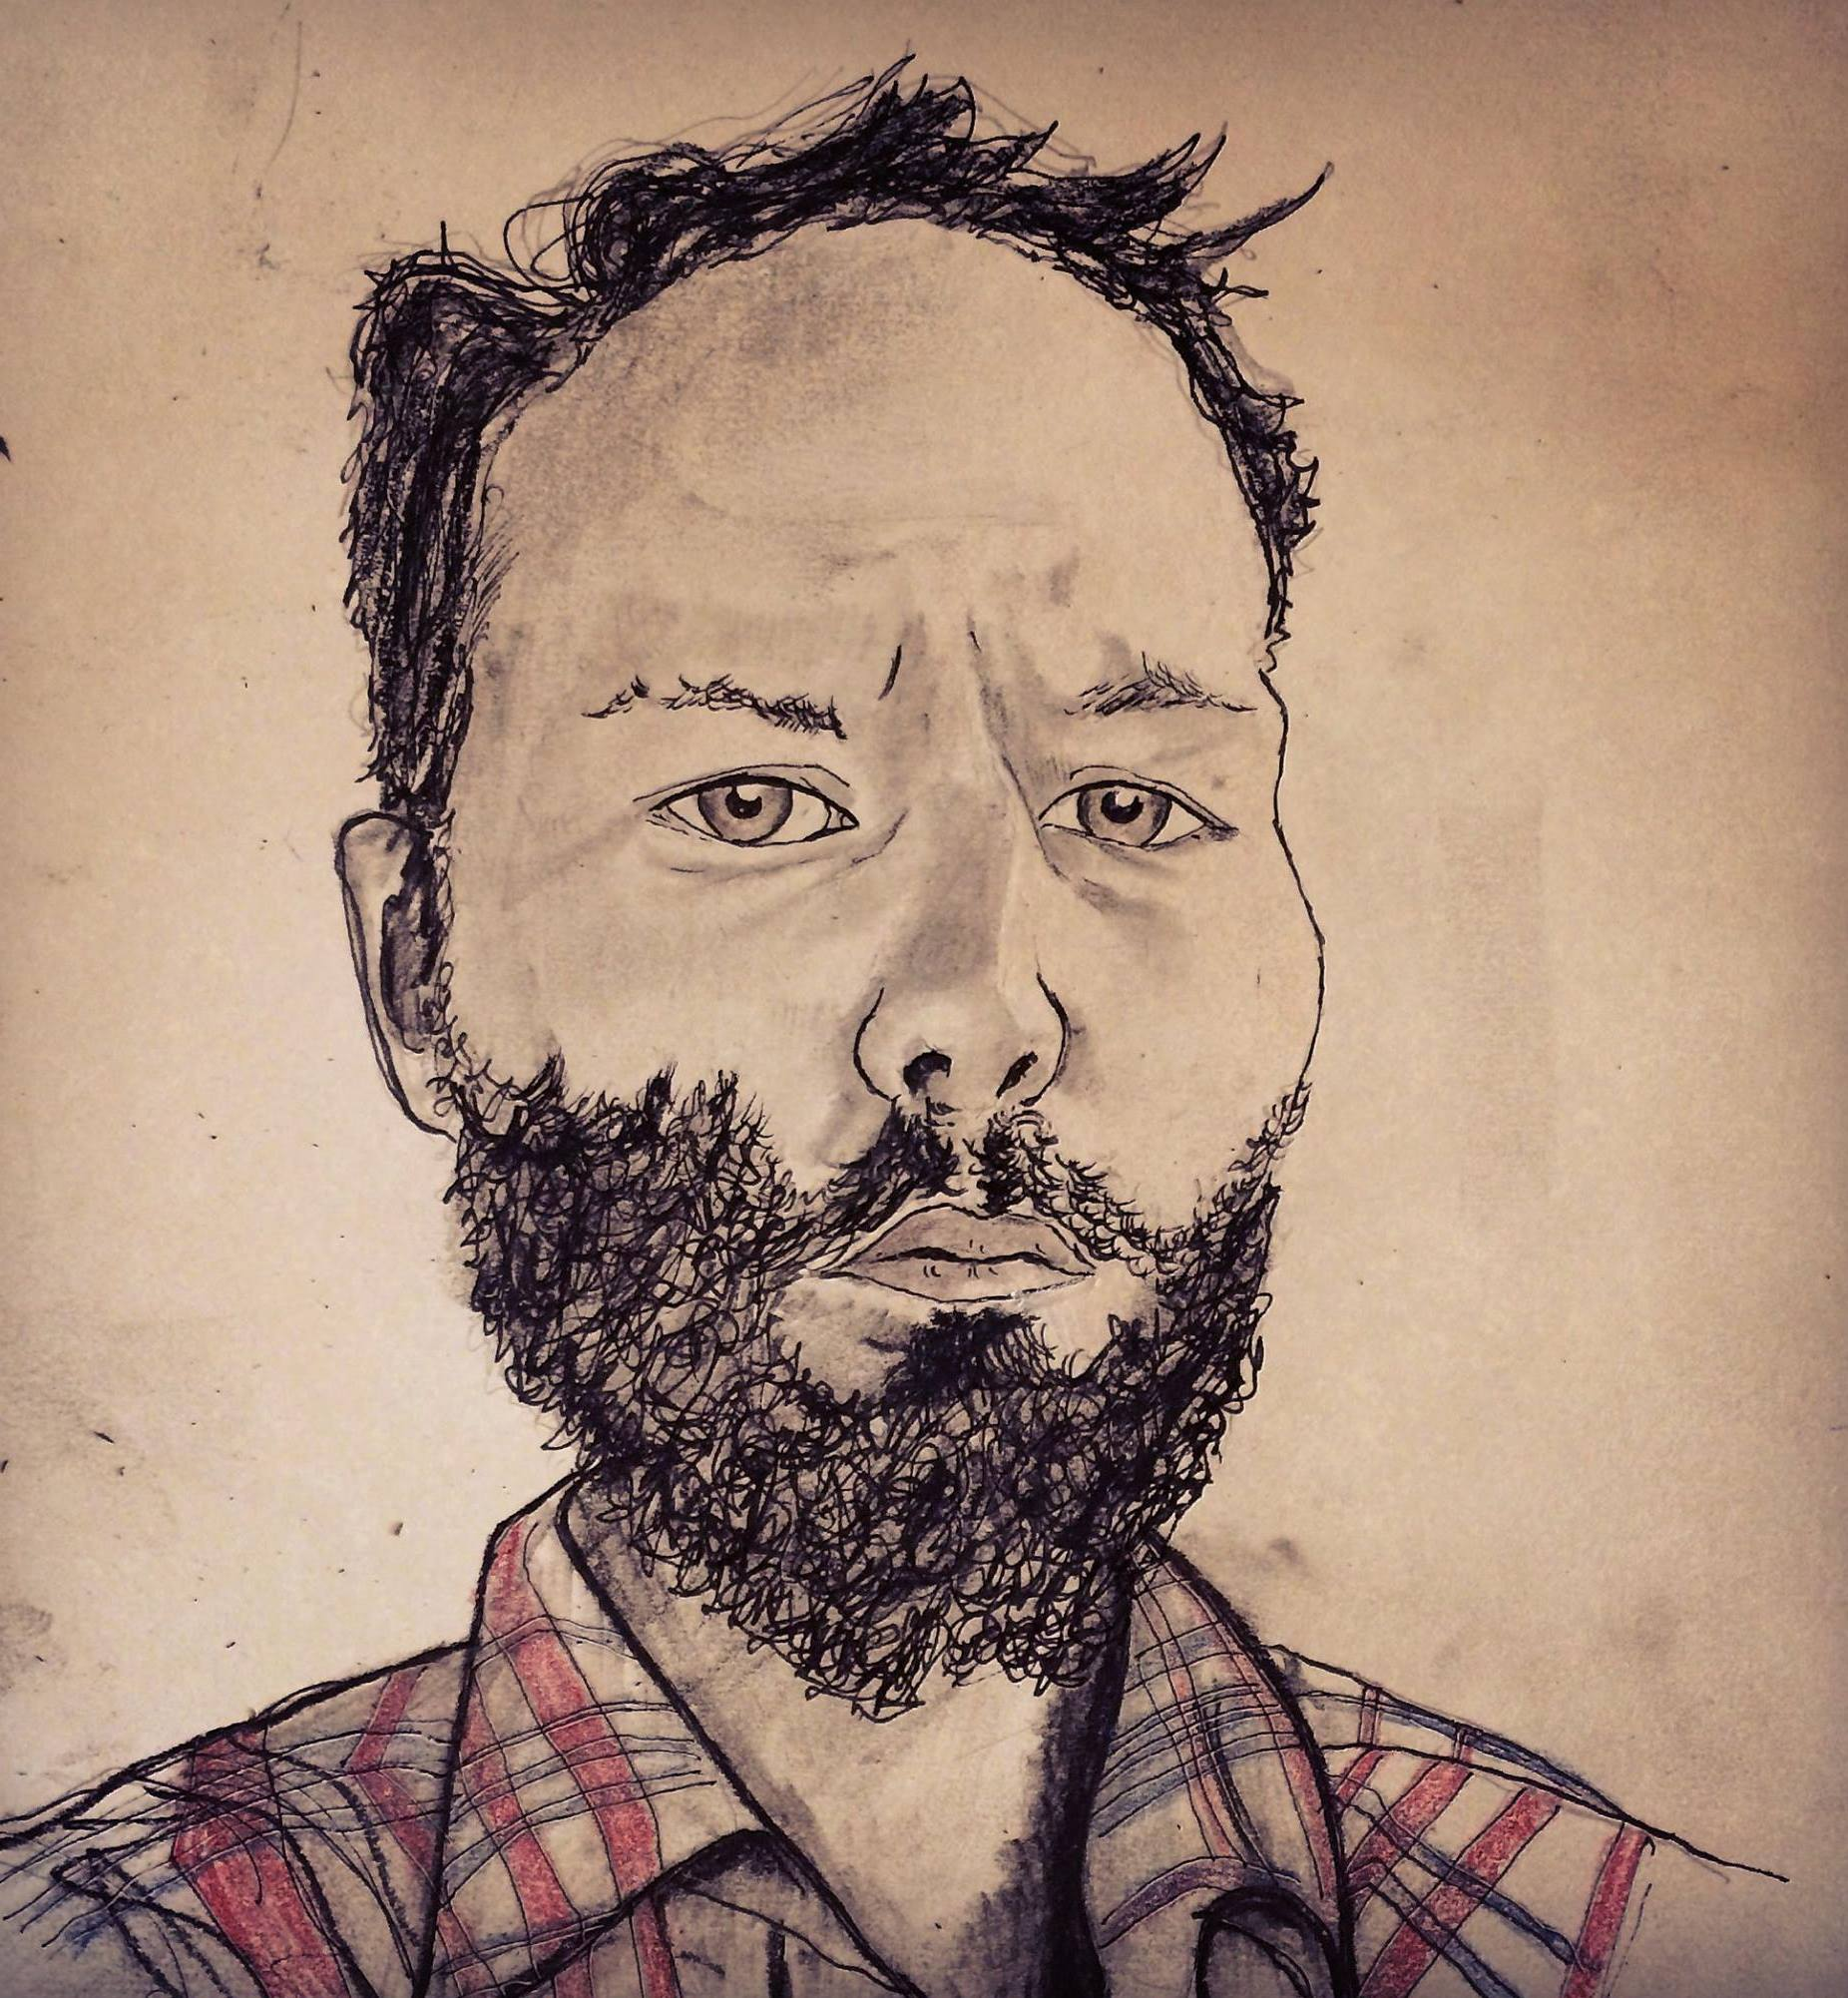 Joshua Marie Wilkinson drawn by Zachary Schomburg. 2015.